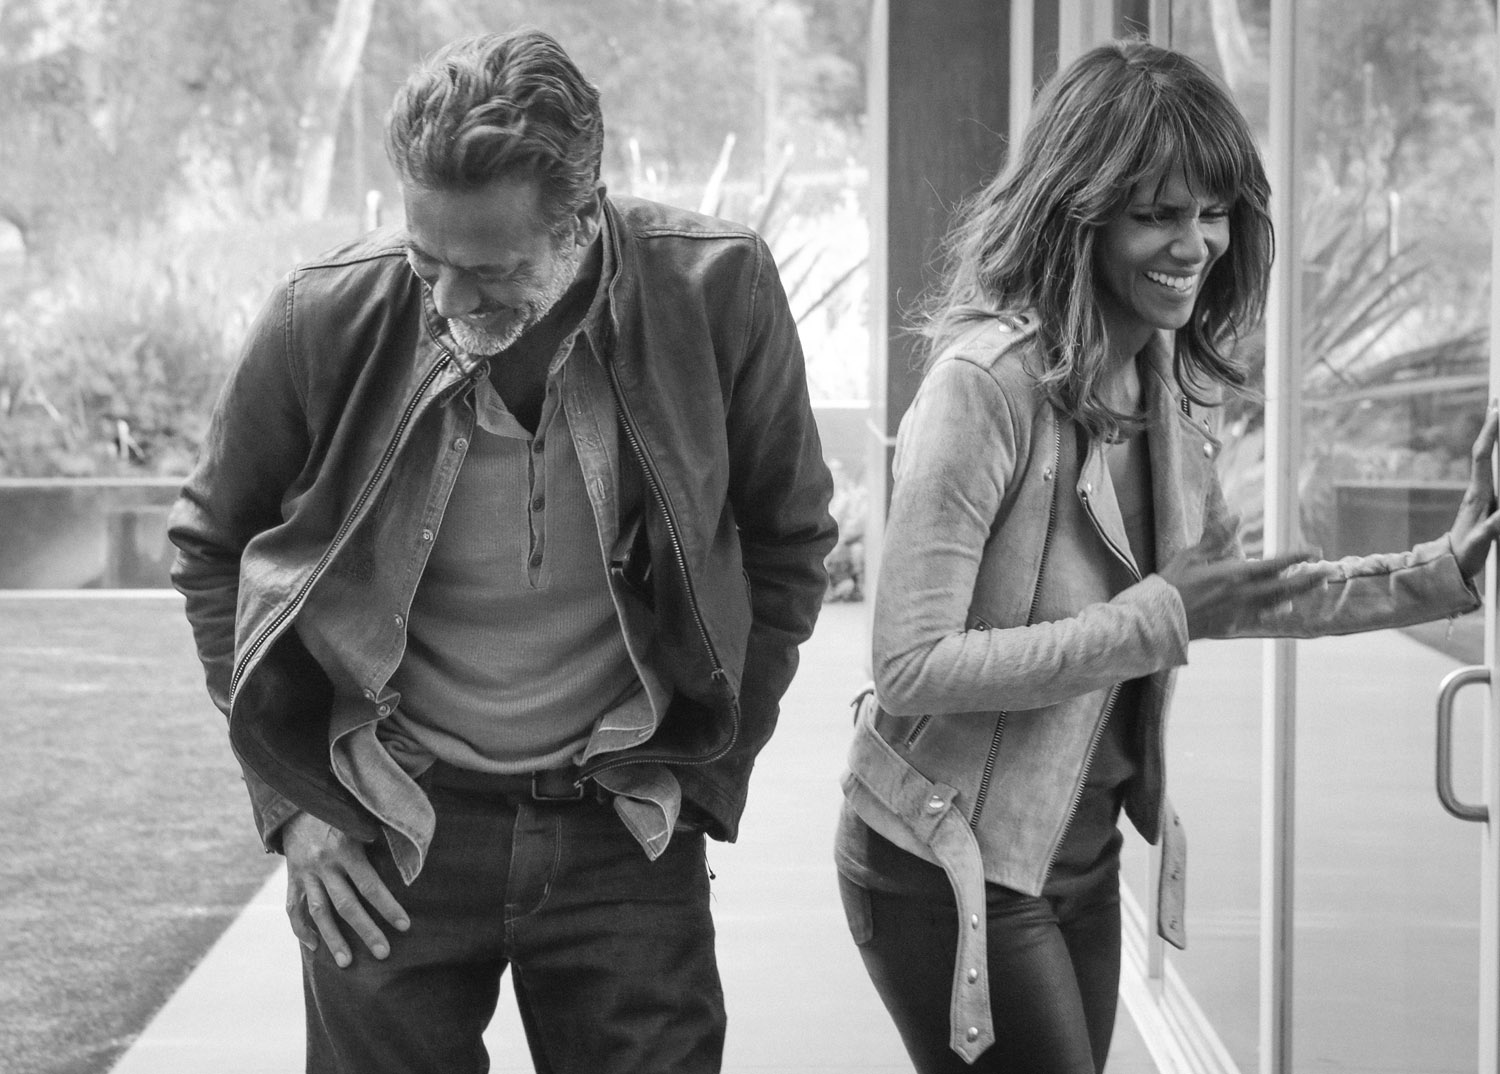 Halle Berry and Jeffrey Dean Morgan enjoy a moment on set.